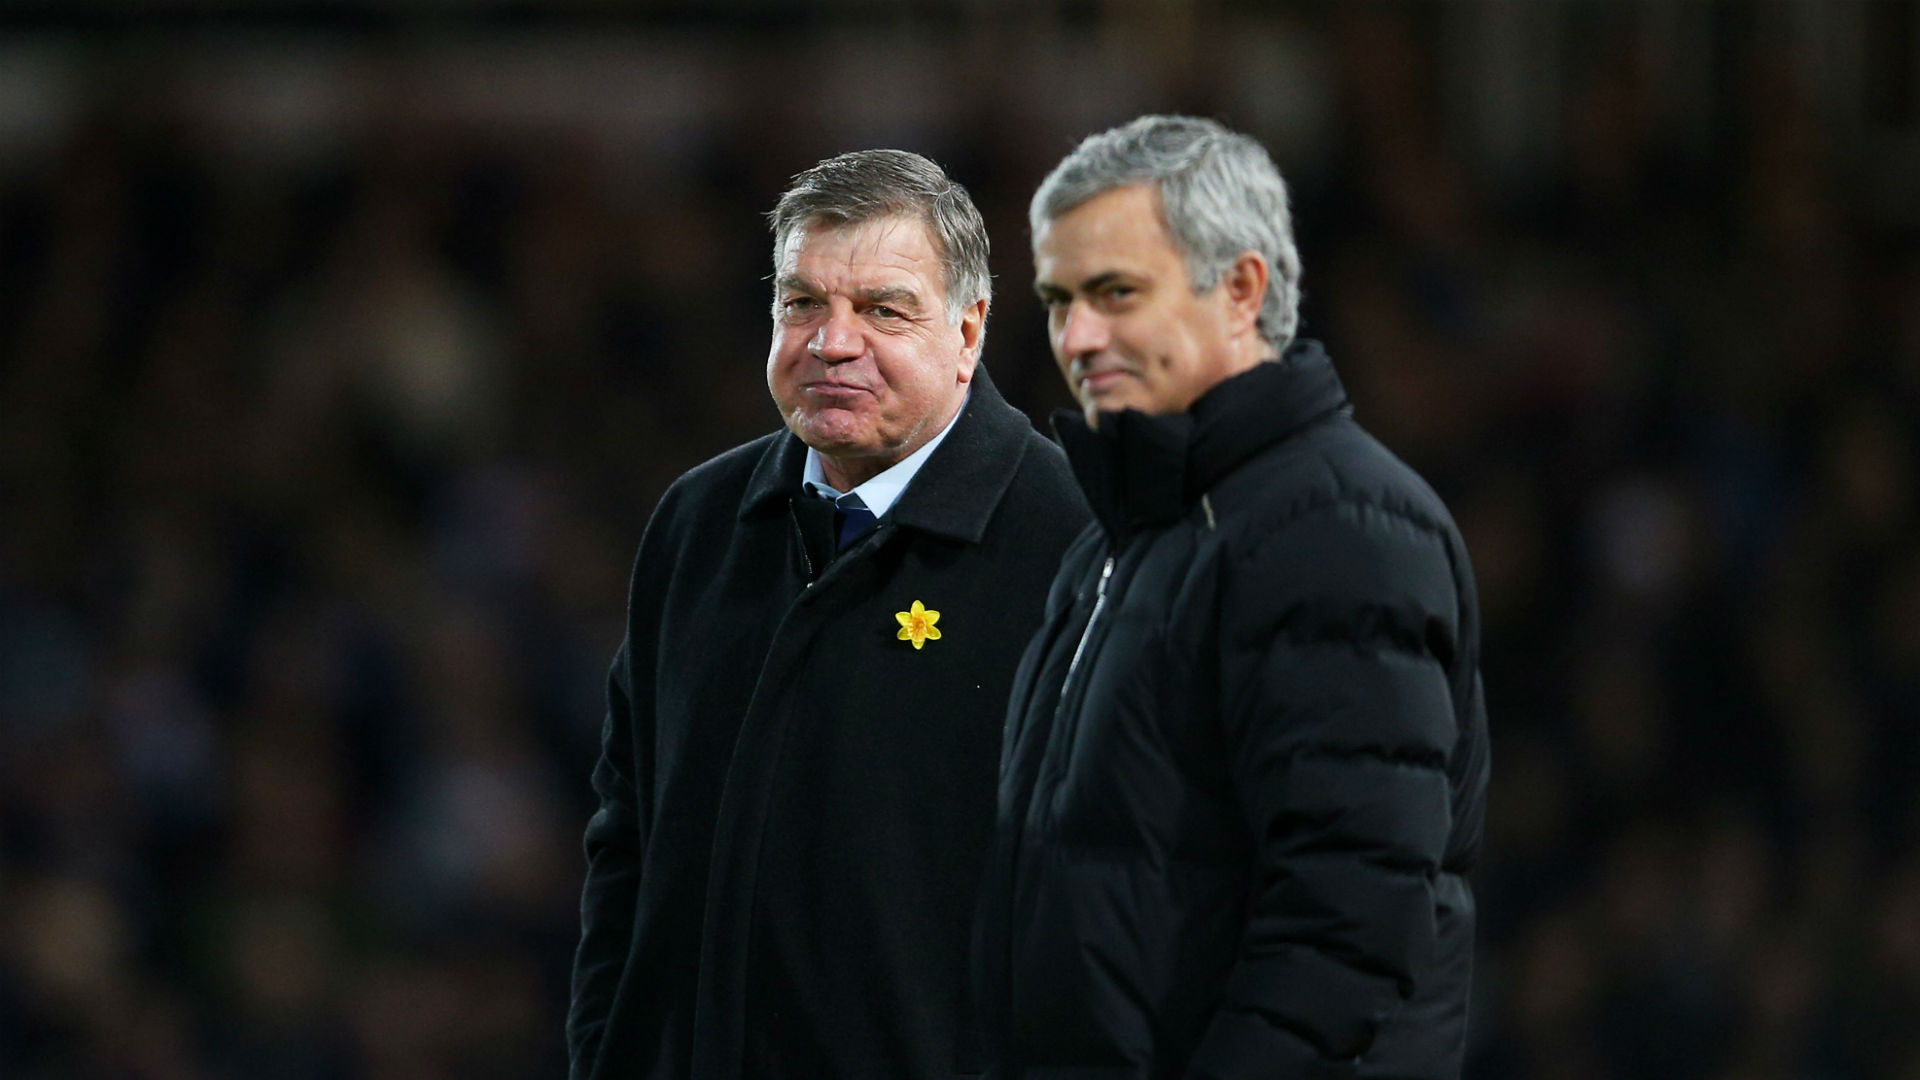 It would happen abroad- Allardyce backs Mourinho's Premier League gripe